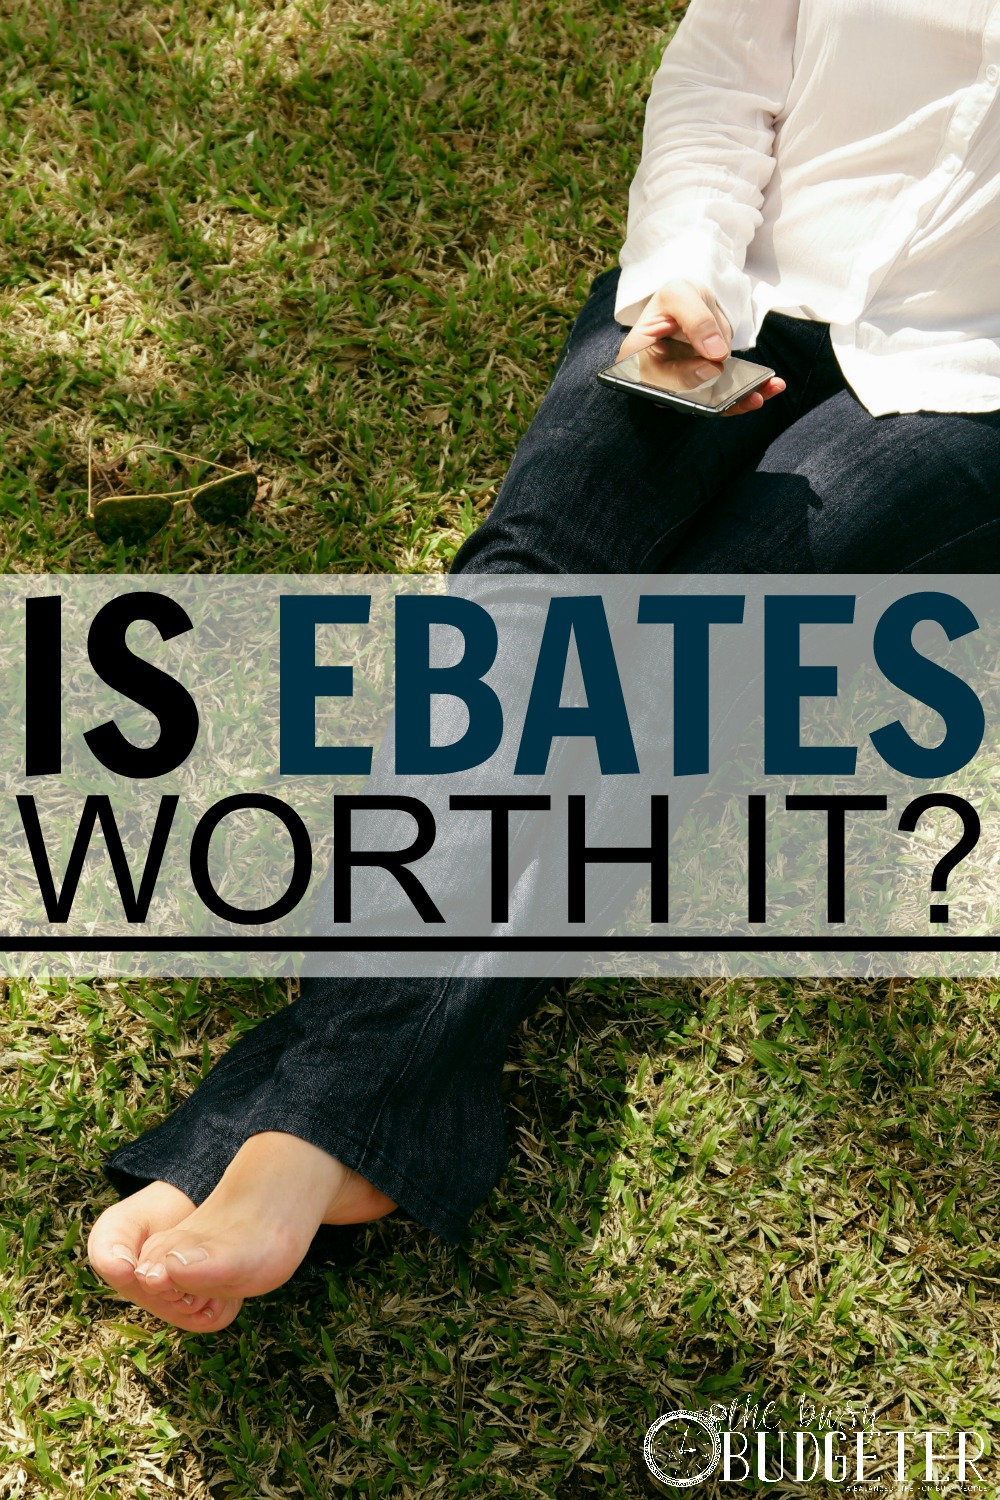 Is Ebates Worth It? - Totally agree with this! I started using it 8 weeks ago and am up to $65! Granted $65 isn't exactly making me rich, but it's enough for a nice dinner date and it took me absolutley no extra effort at all. Great review!